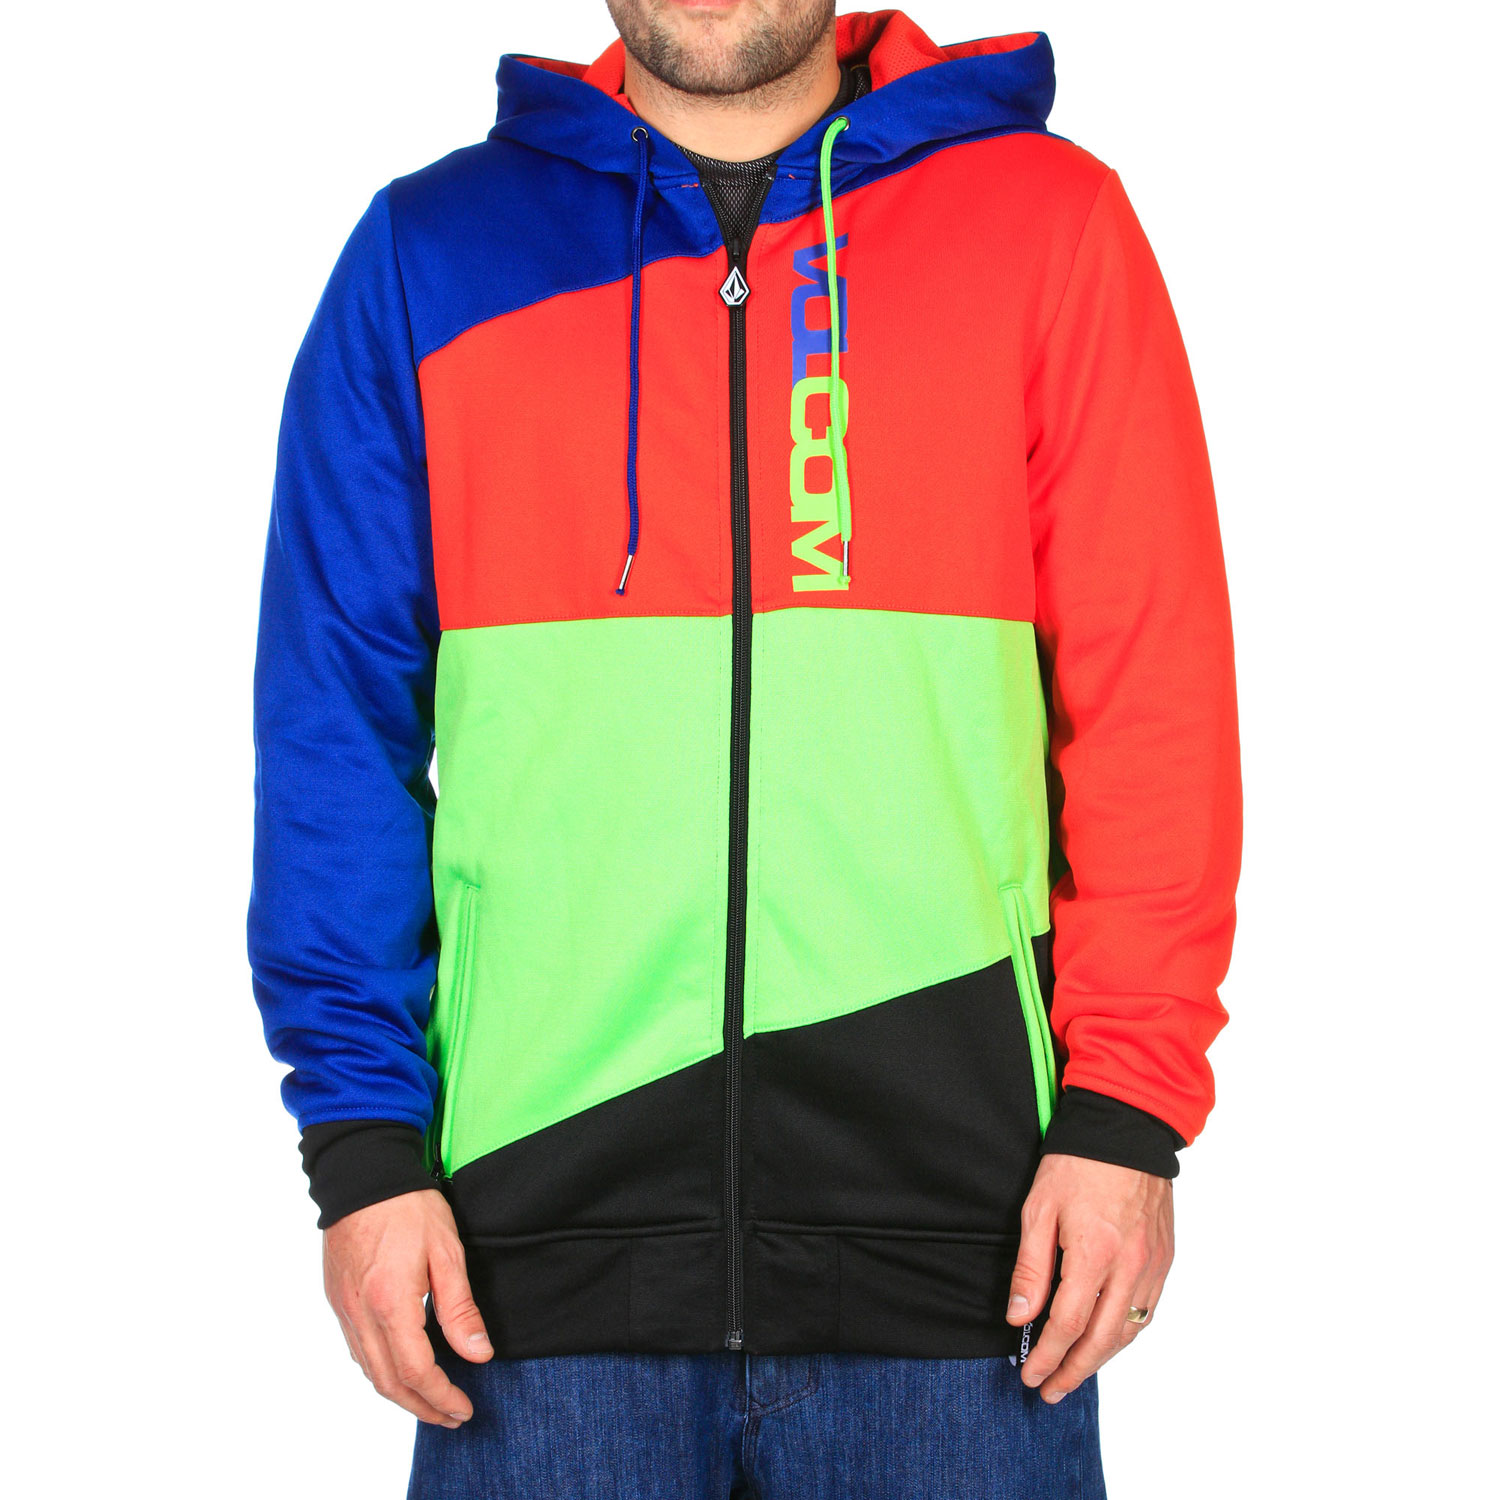 Surf Key Features of the Volcom Cane Hydro Hoodie: 280 gm Hydro Fleece Mesh Lined Ribbed Cuff Ribbed Hem Zippered Hand Pockets Drawcord Hood Cinch Whistle Zipper Pull Volcom Screen Standard Fit - $90.00